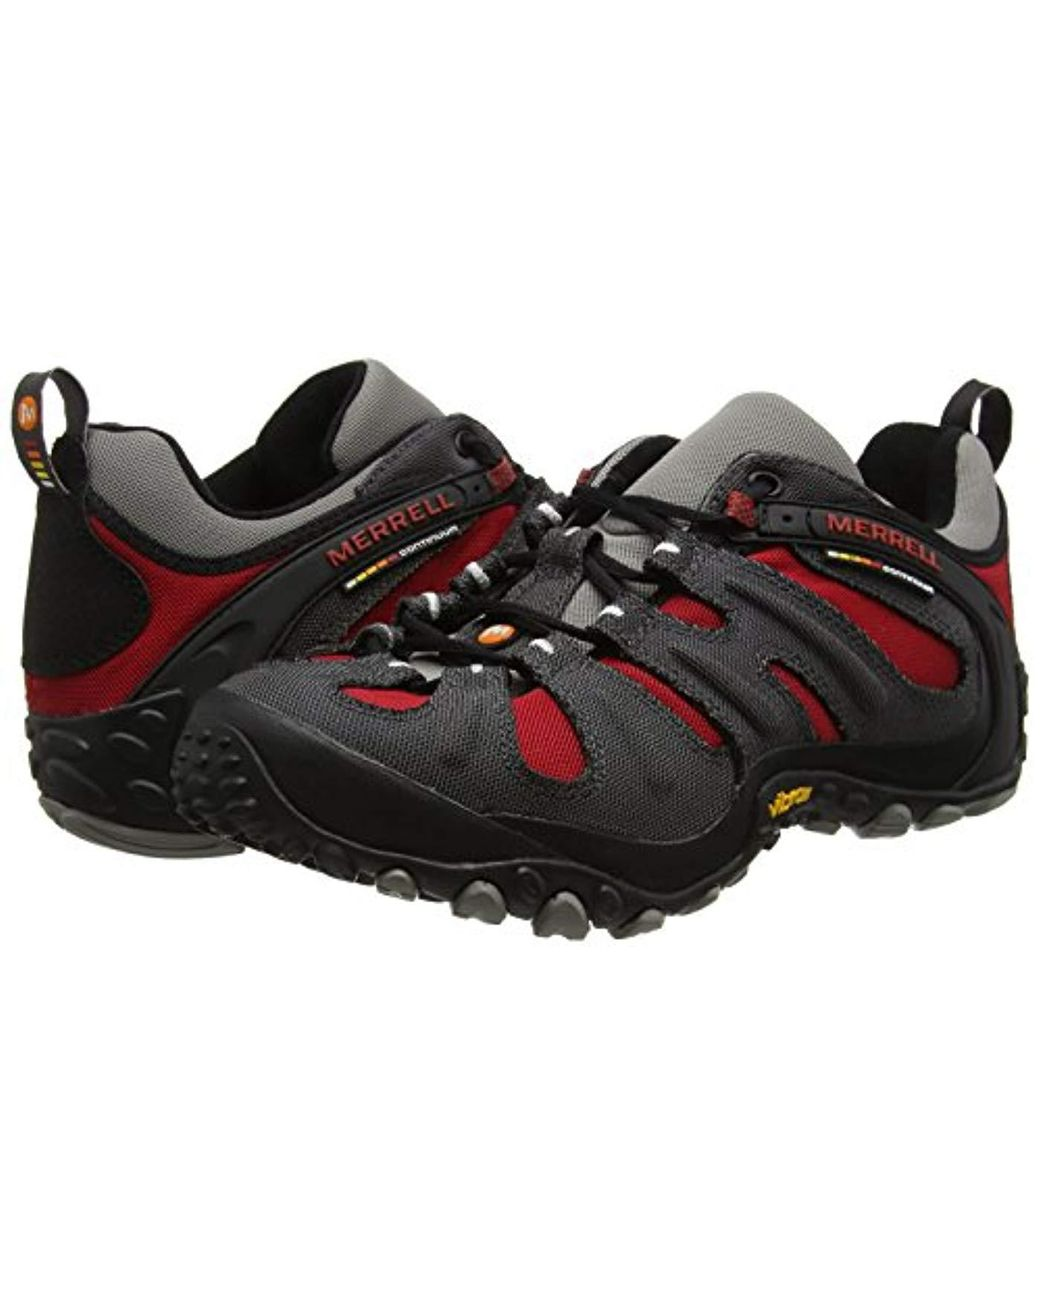 Merrell Rubber Cham Wrap Slam Low Rise Hiking Boots for Men